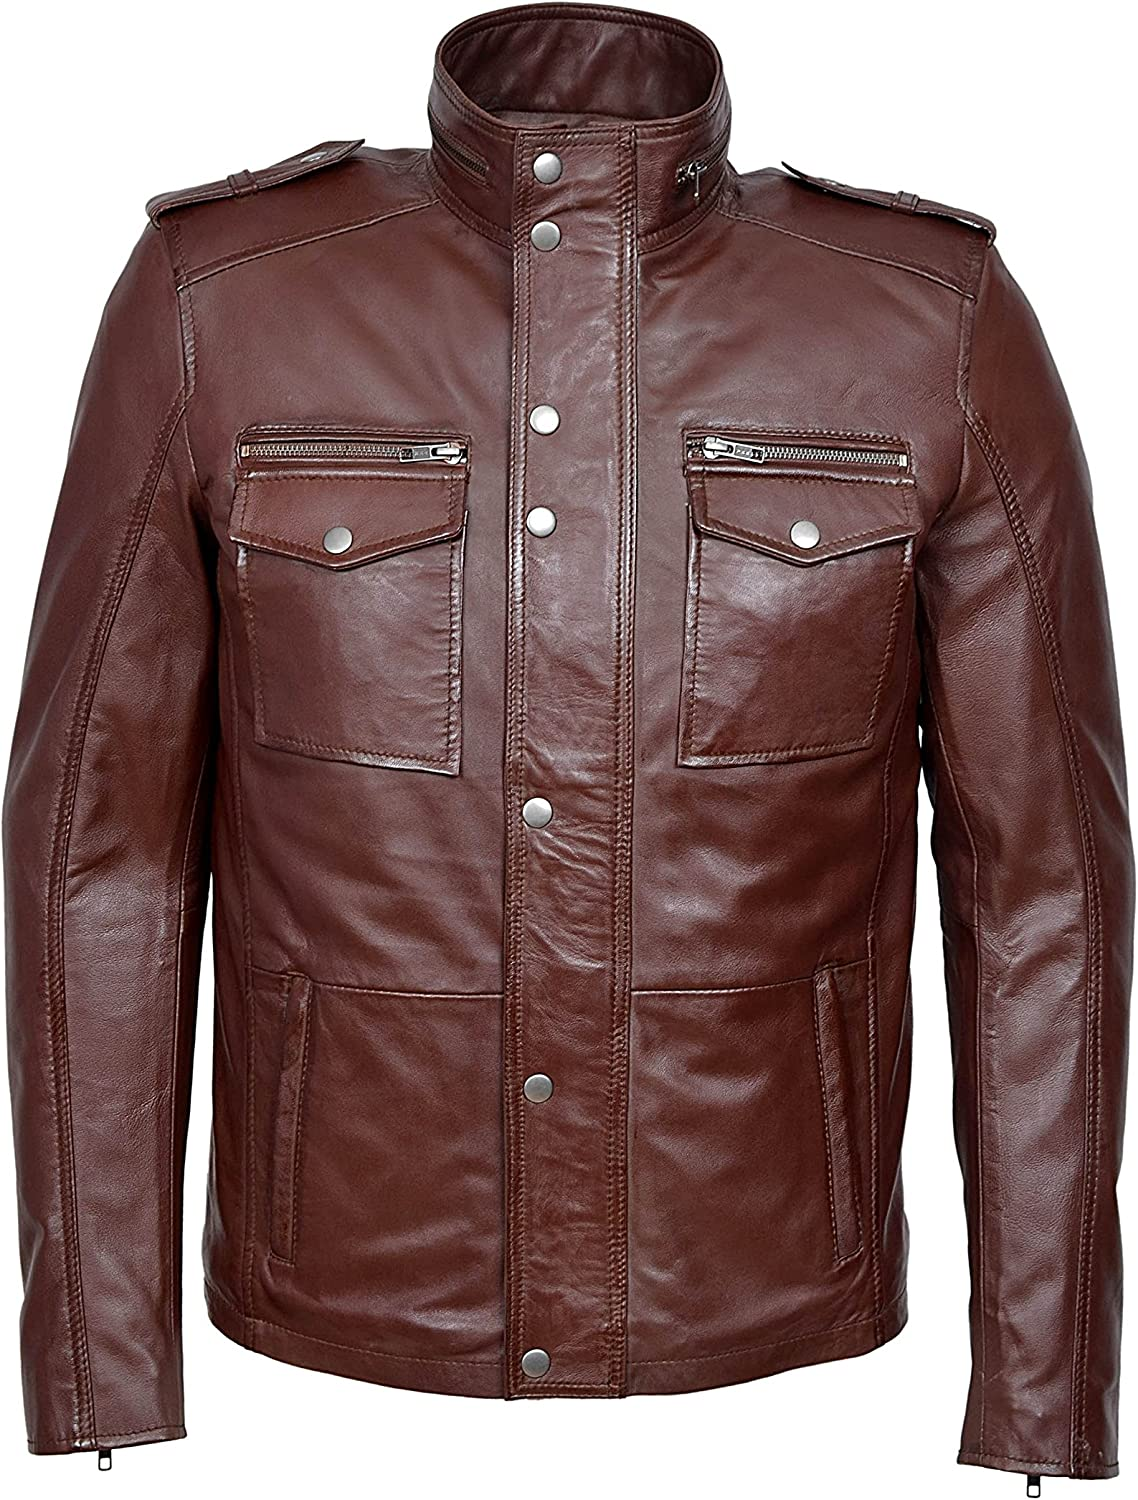 Trojan Men's Washed Brown Biker Style Motorcycle Soft Nappa Real Leather Jacket 5540